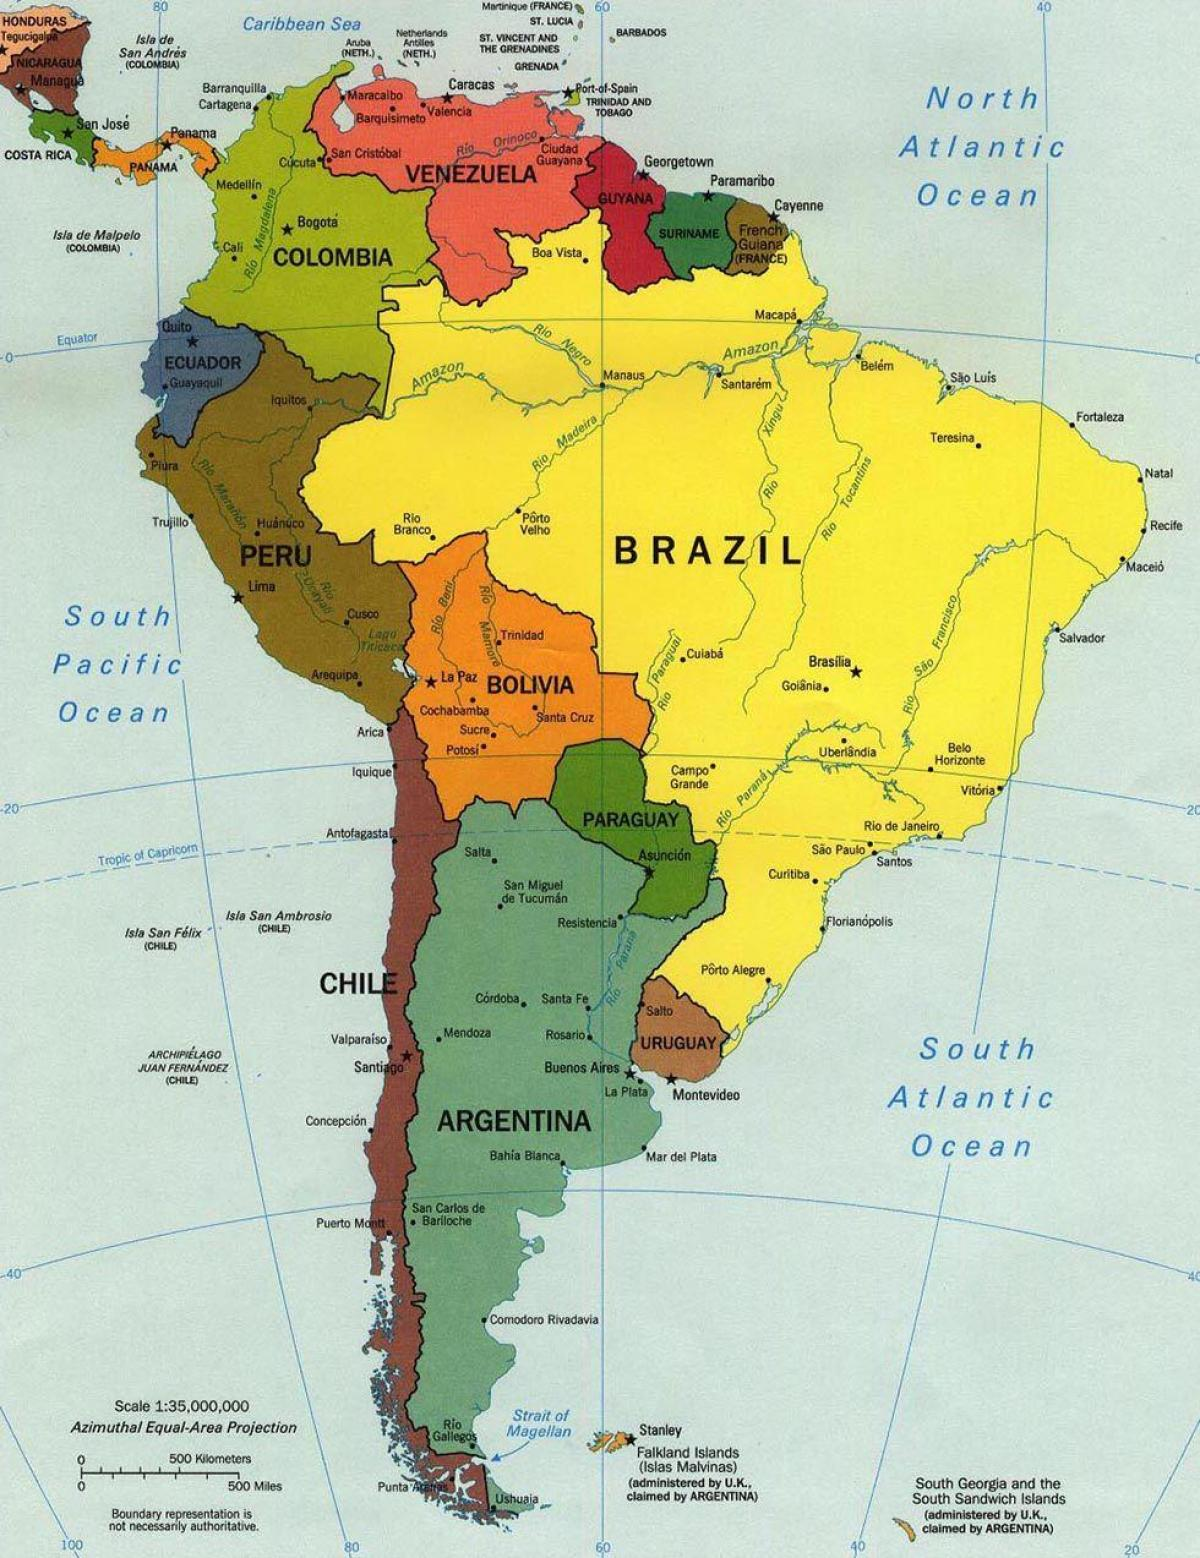 Map Of Spain Labeled.Labeled Map Of Brazil Map Of Brazil Labeled South America Americas